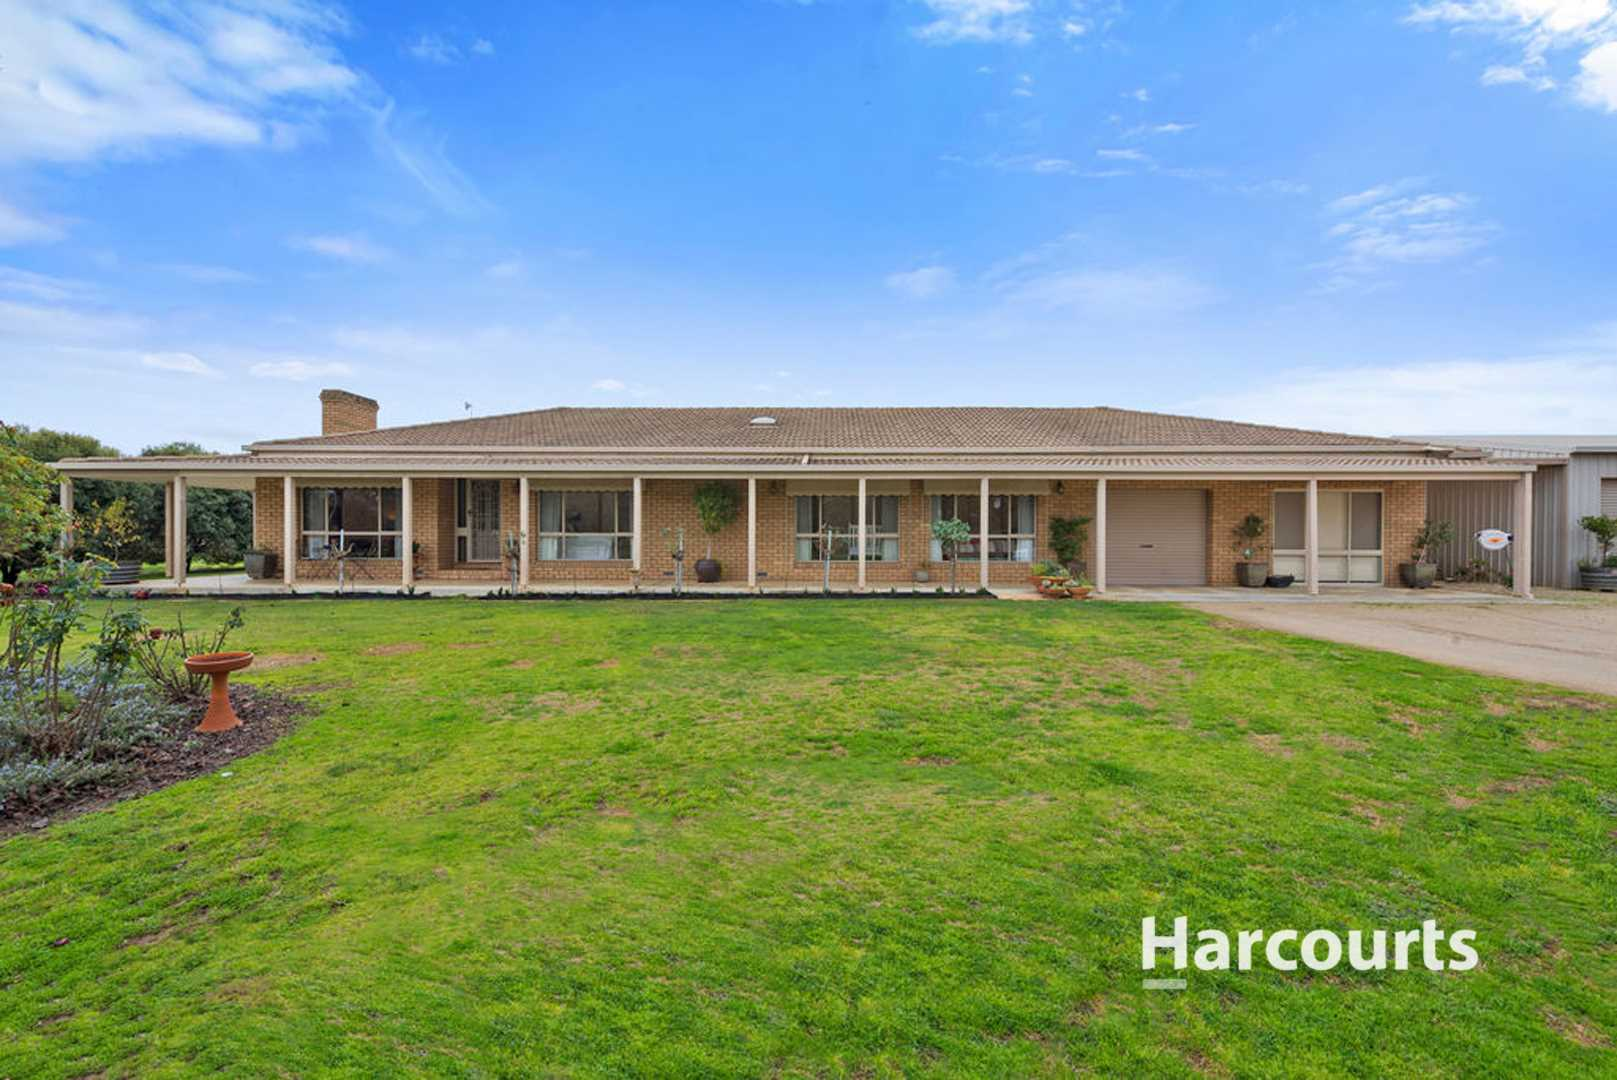 2.02 HA Superb Family Living With Space 5 Acres